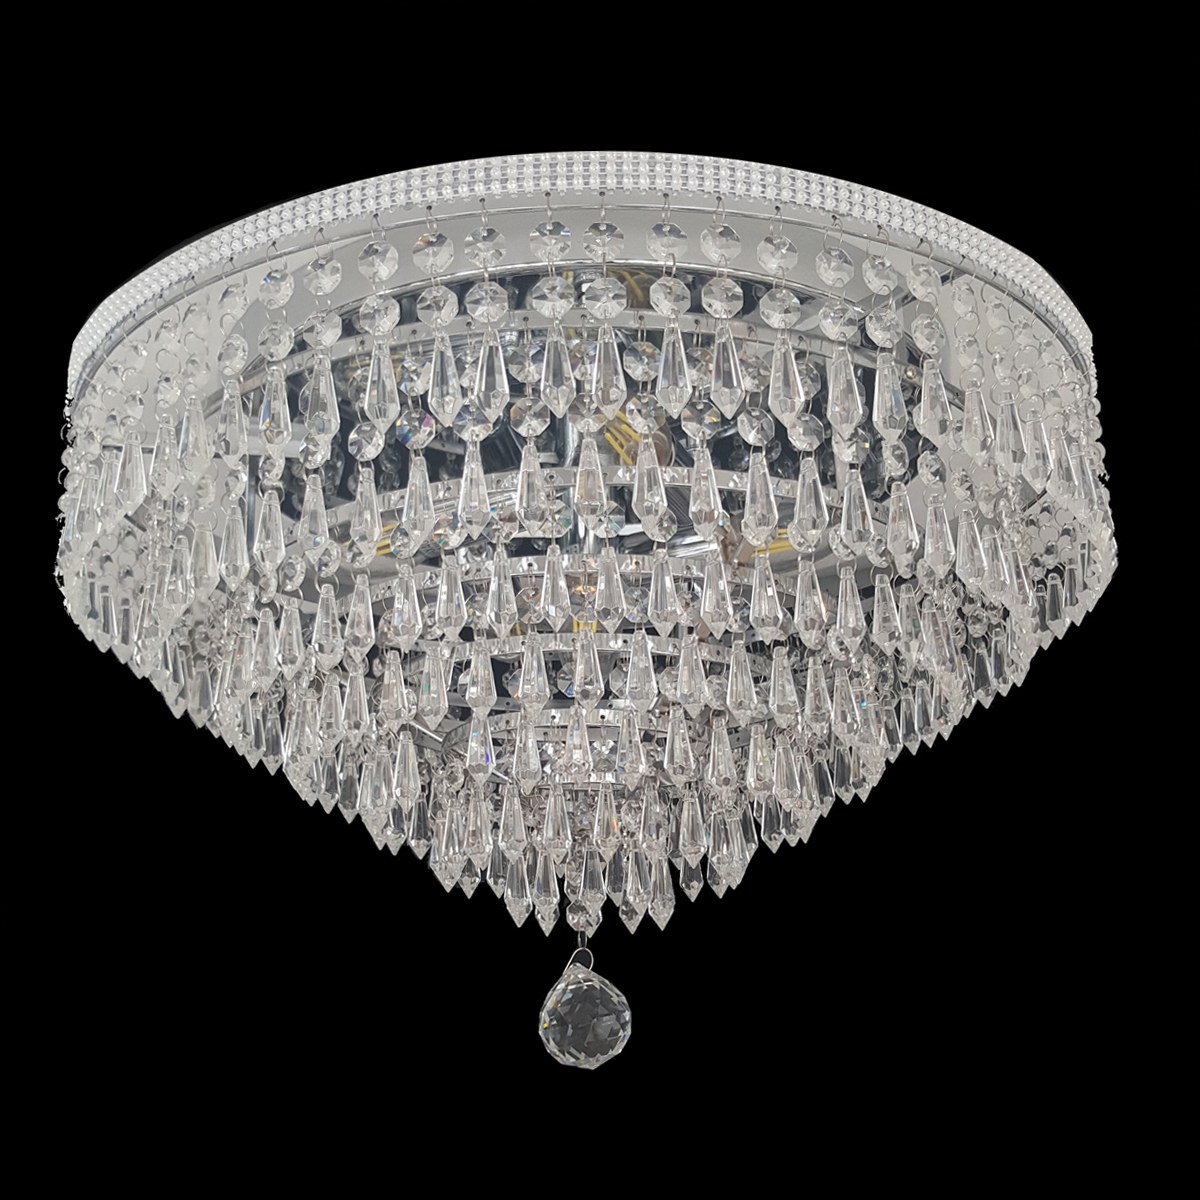 Lighting empire chandeliers waterfall 470 chrome ceiling light ctcwat05470ch arubaitofo Gallery